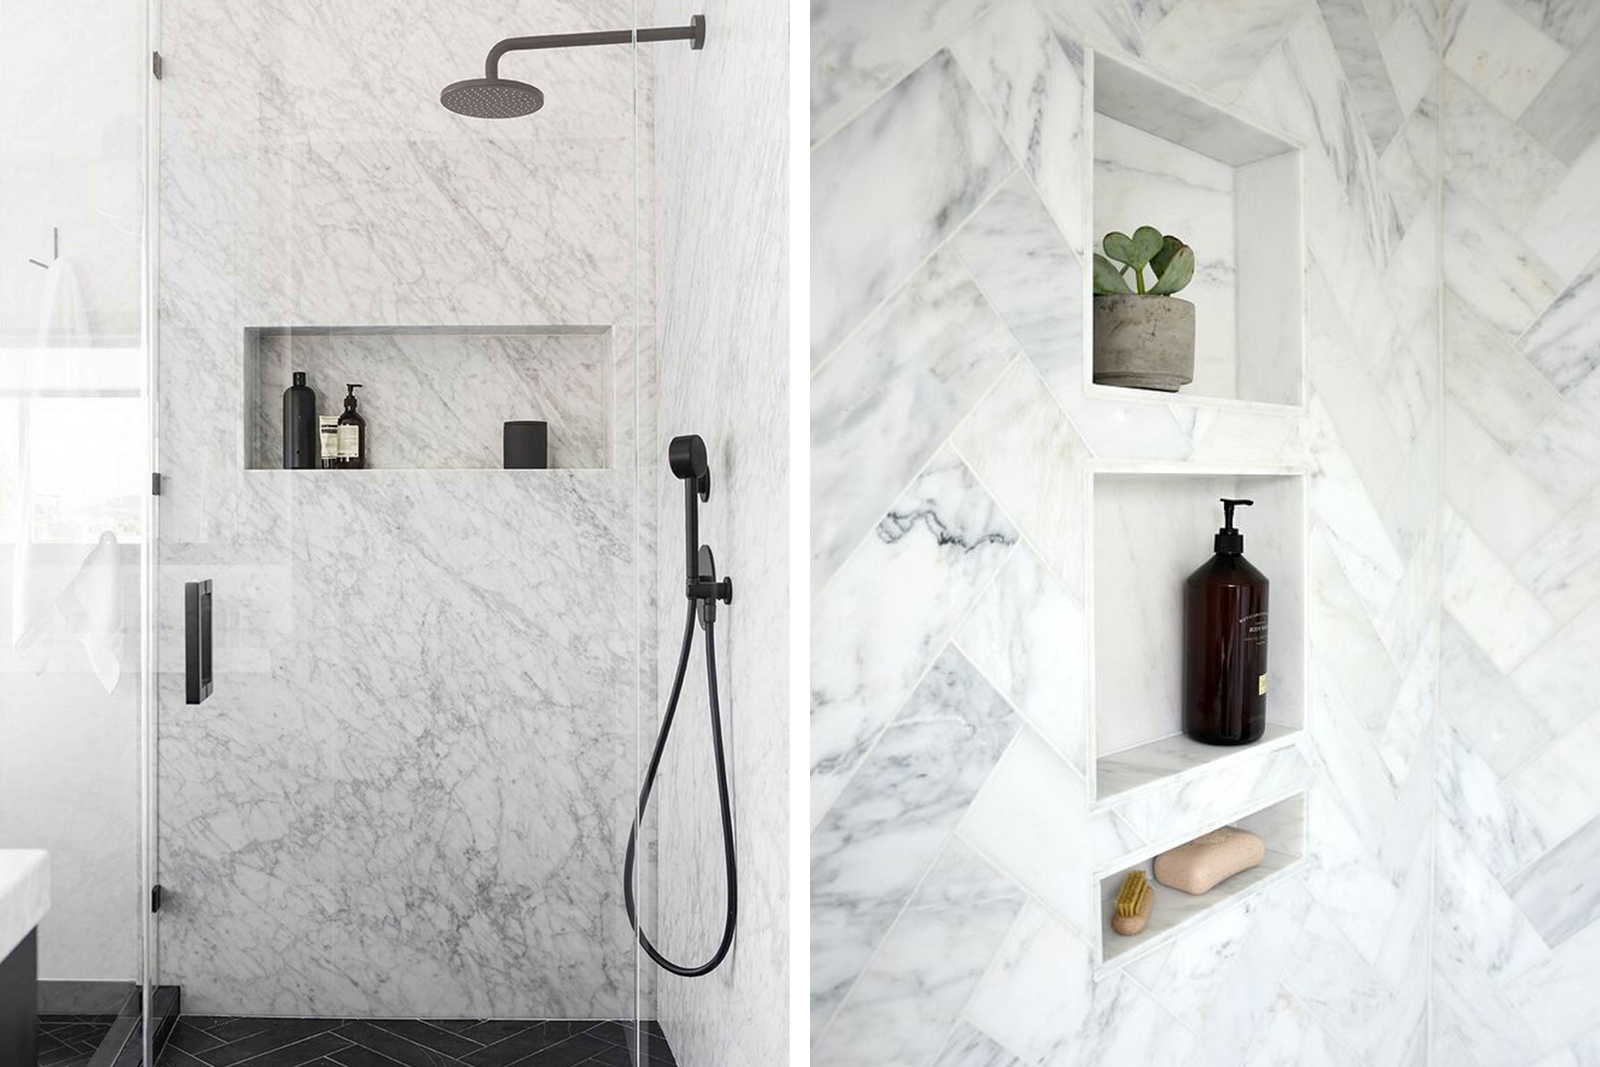 Cherie-Barber_Renovating-For-Profit_Small-Bathrooms-niche